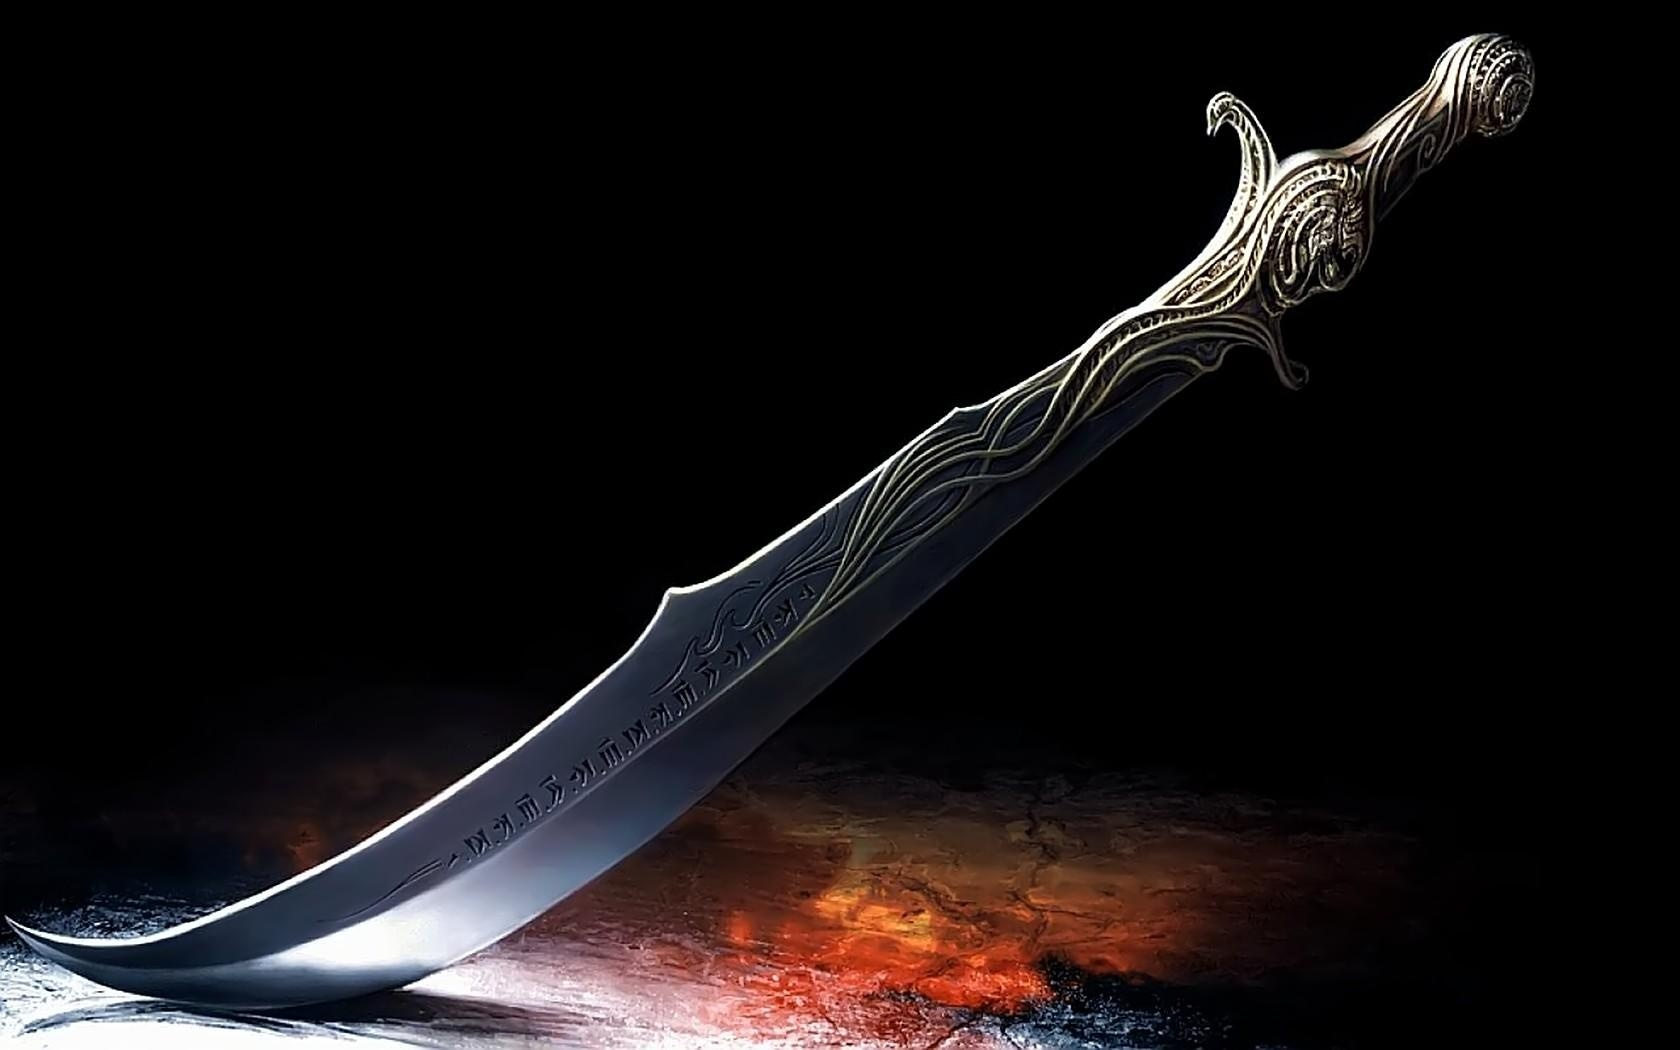 abstract wallpapers hd sword